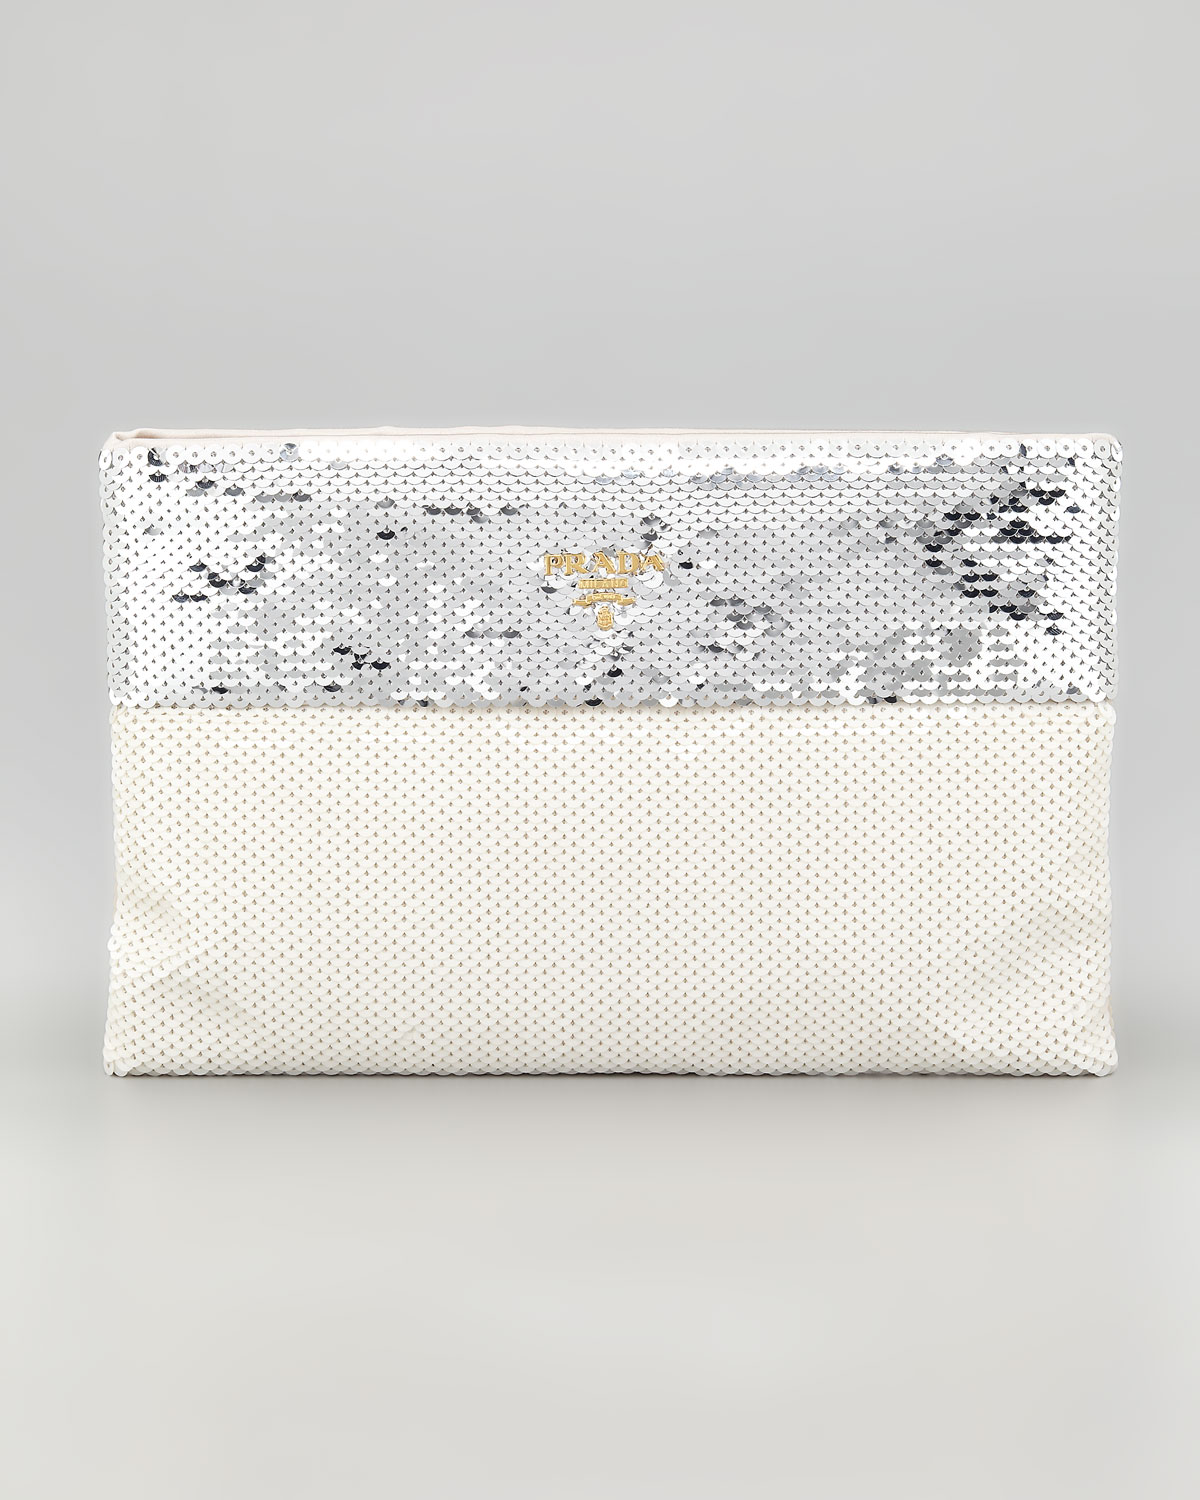 Prada Bicolor Sequined Pouch Clutch Bag in Gray (argento) | Lyst